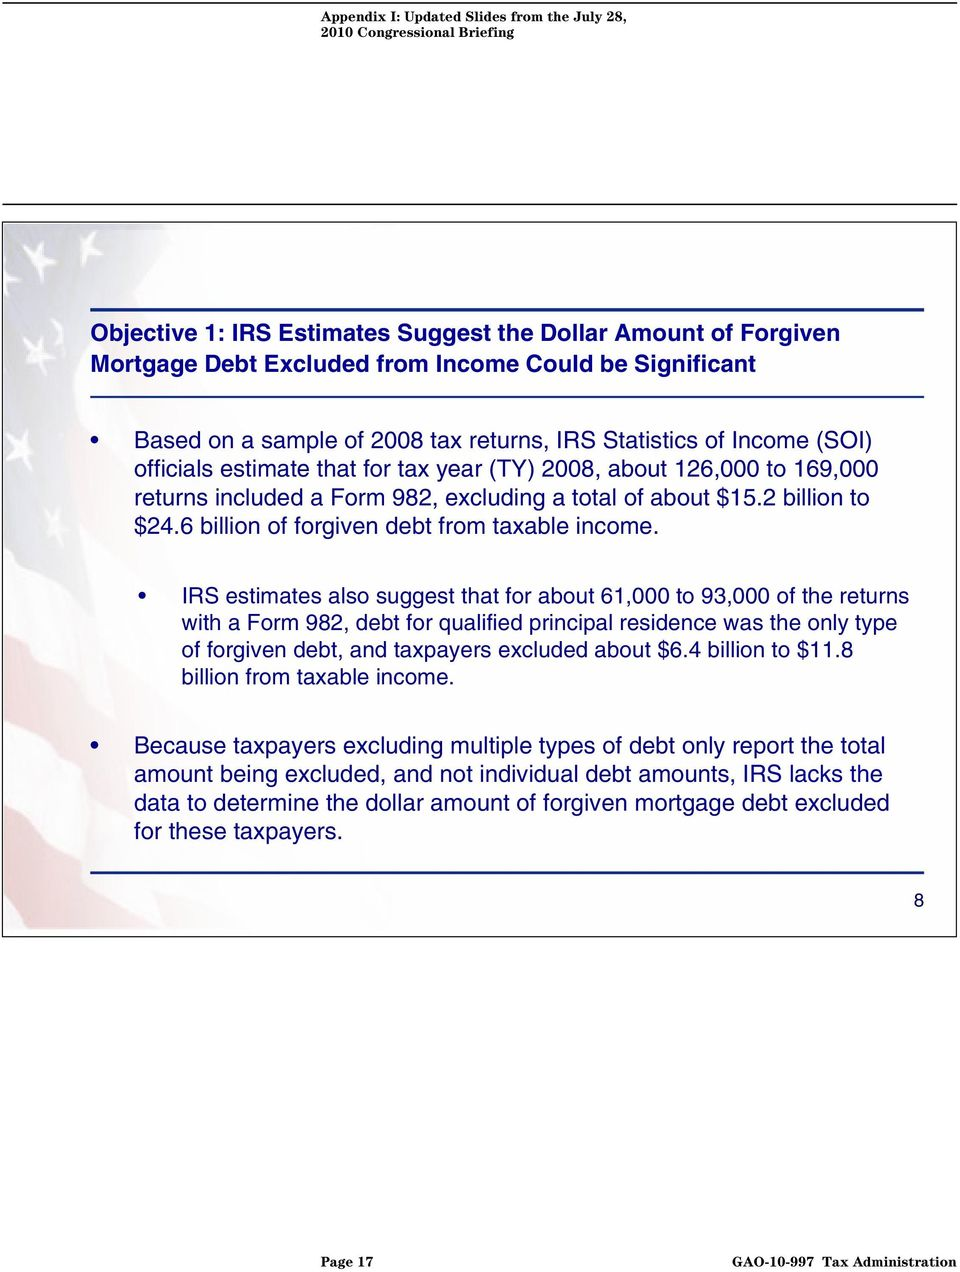 IRS estimates also suggest that for about 61,000 to 93,000 of the returns with a Form 982, debt for qualified principal residence was the only type of forgiven debt, and taxpayers excluded about $6.